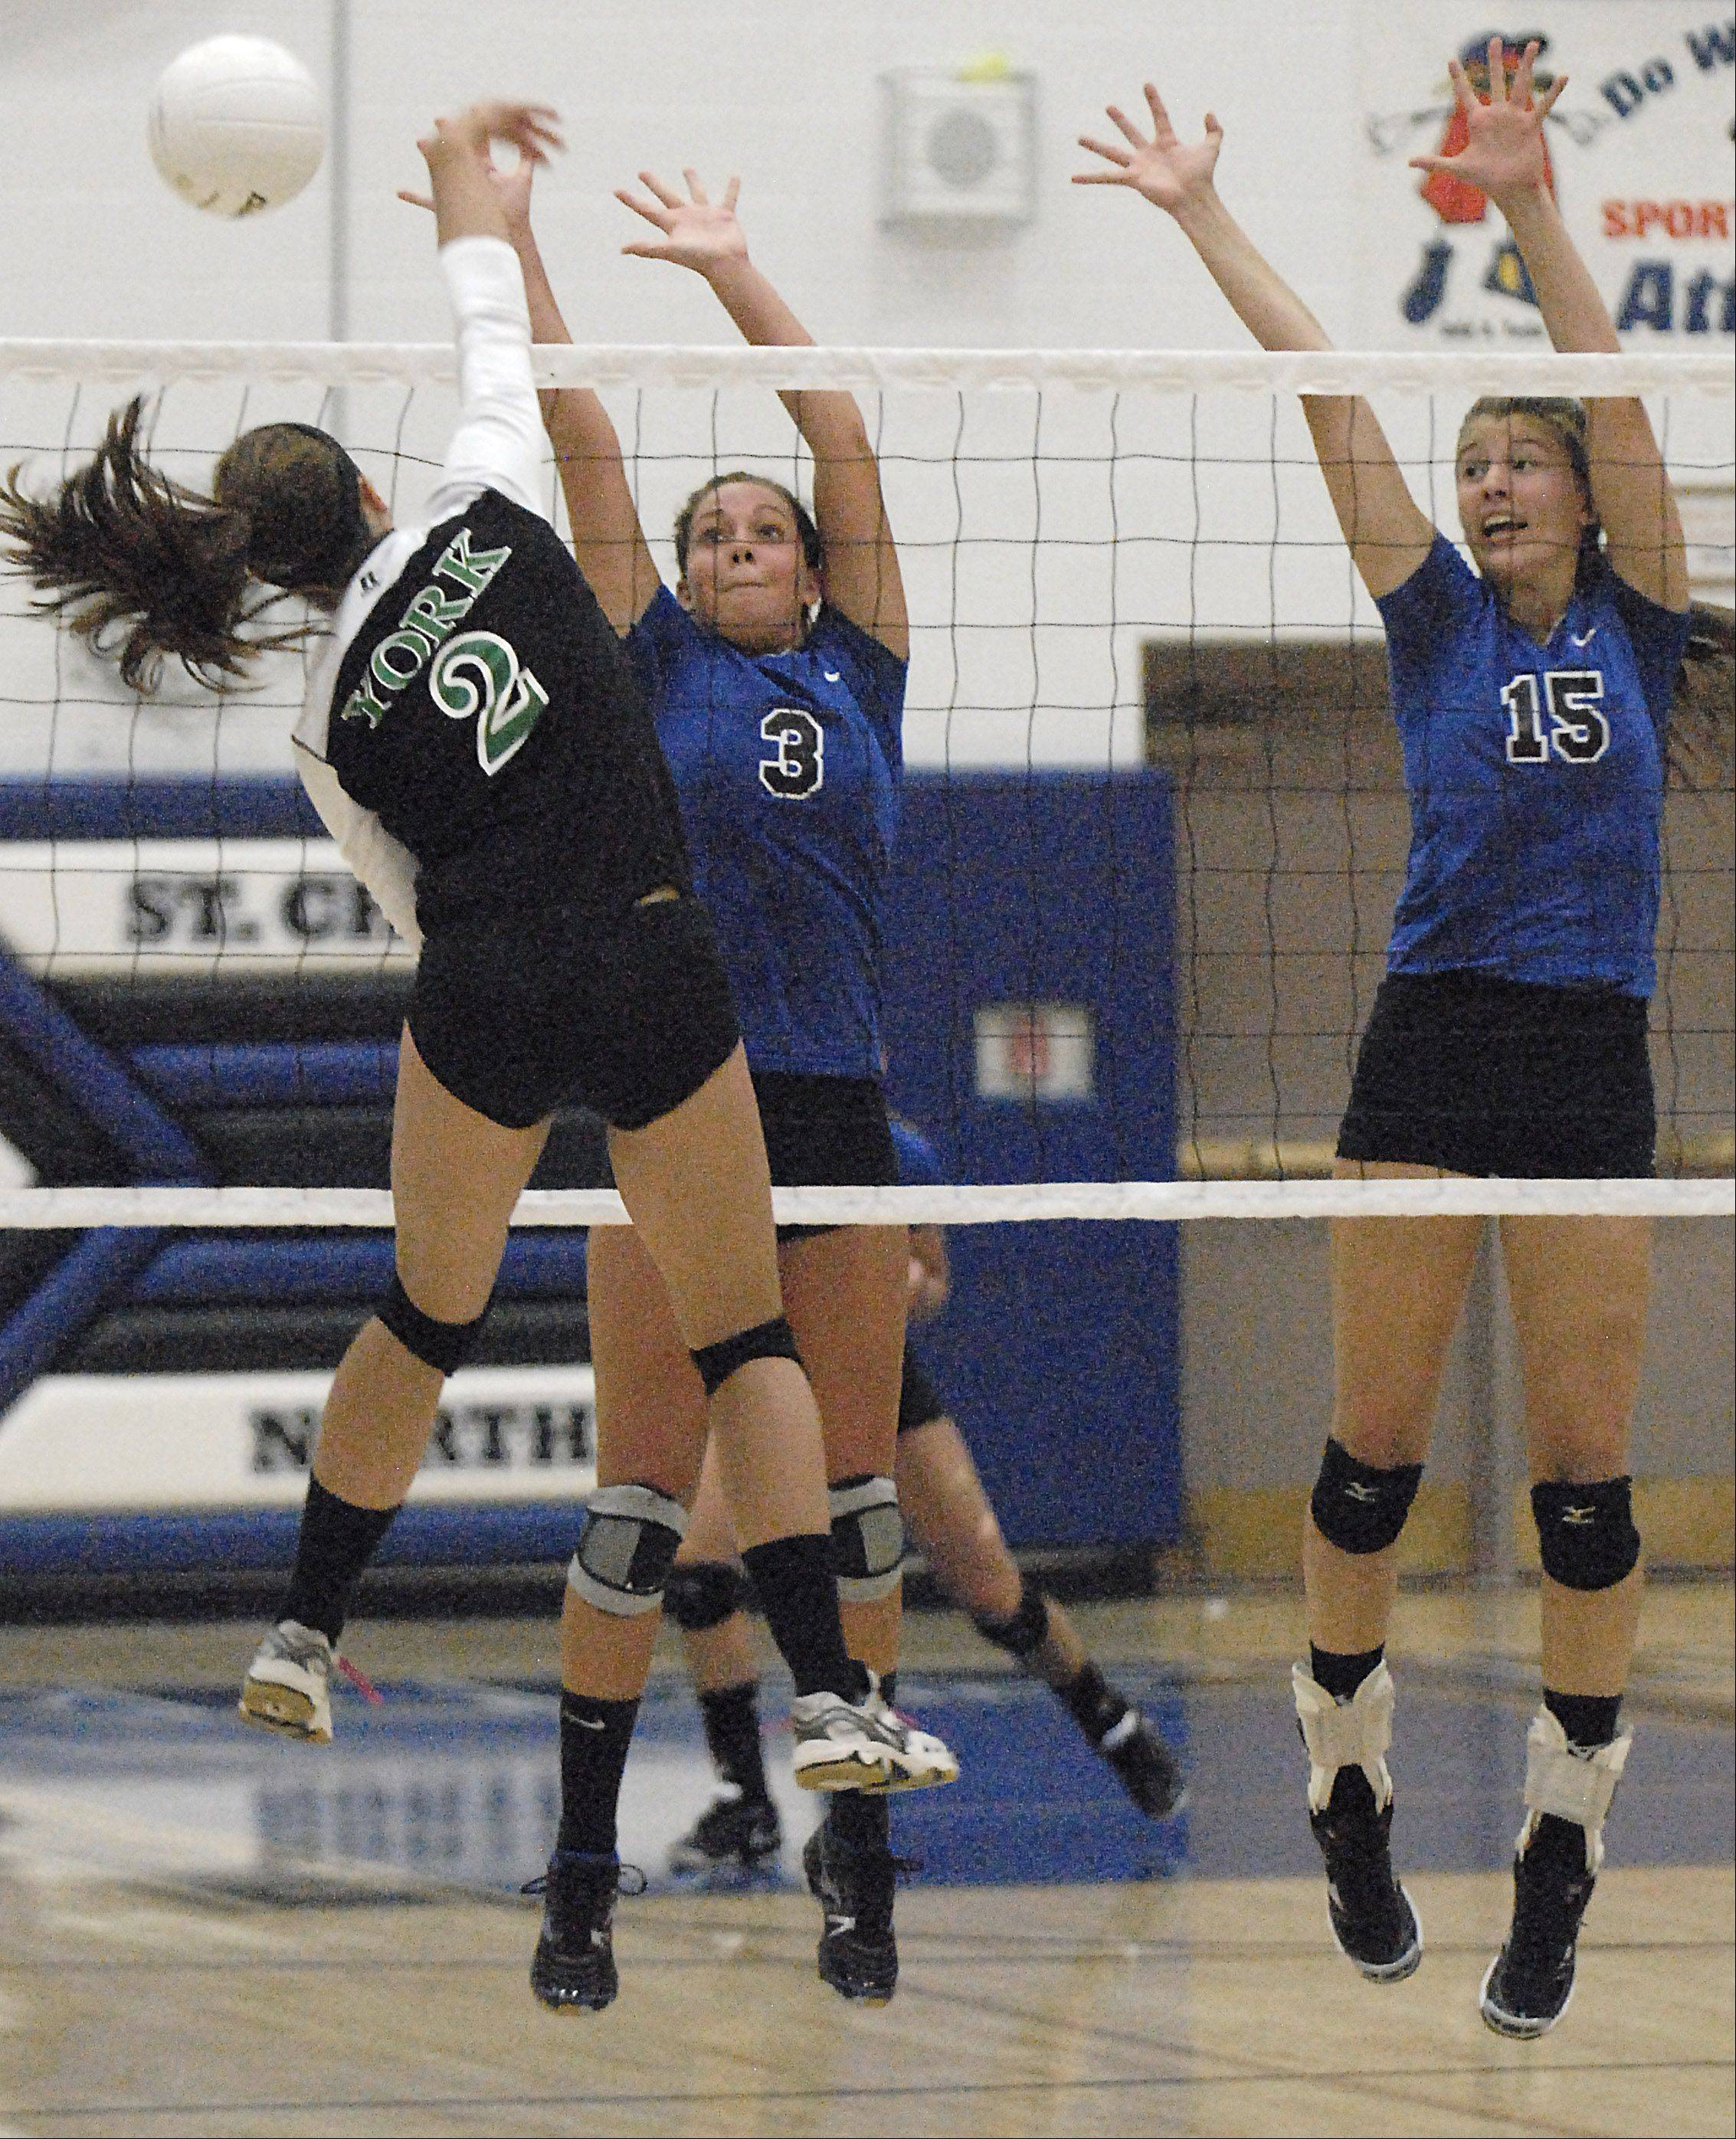 St. Charles North's Emily Belz and Alex Stone attempt a block on a spike by York's Alexandra Preuss in game three on Tuesday.